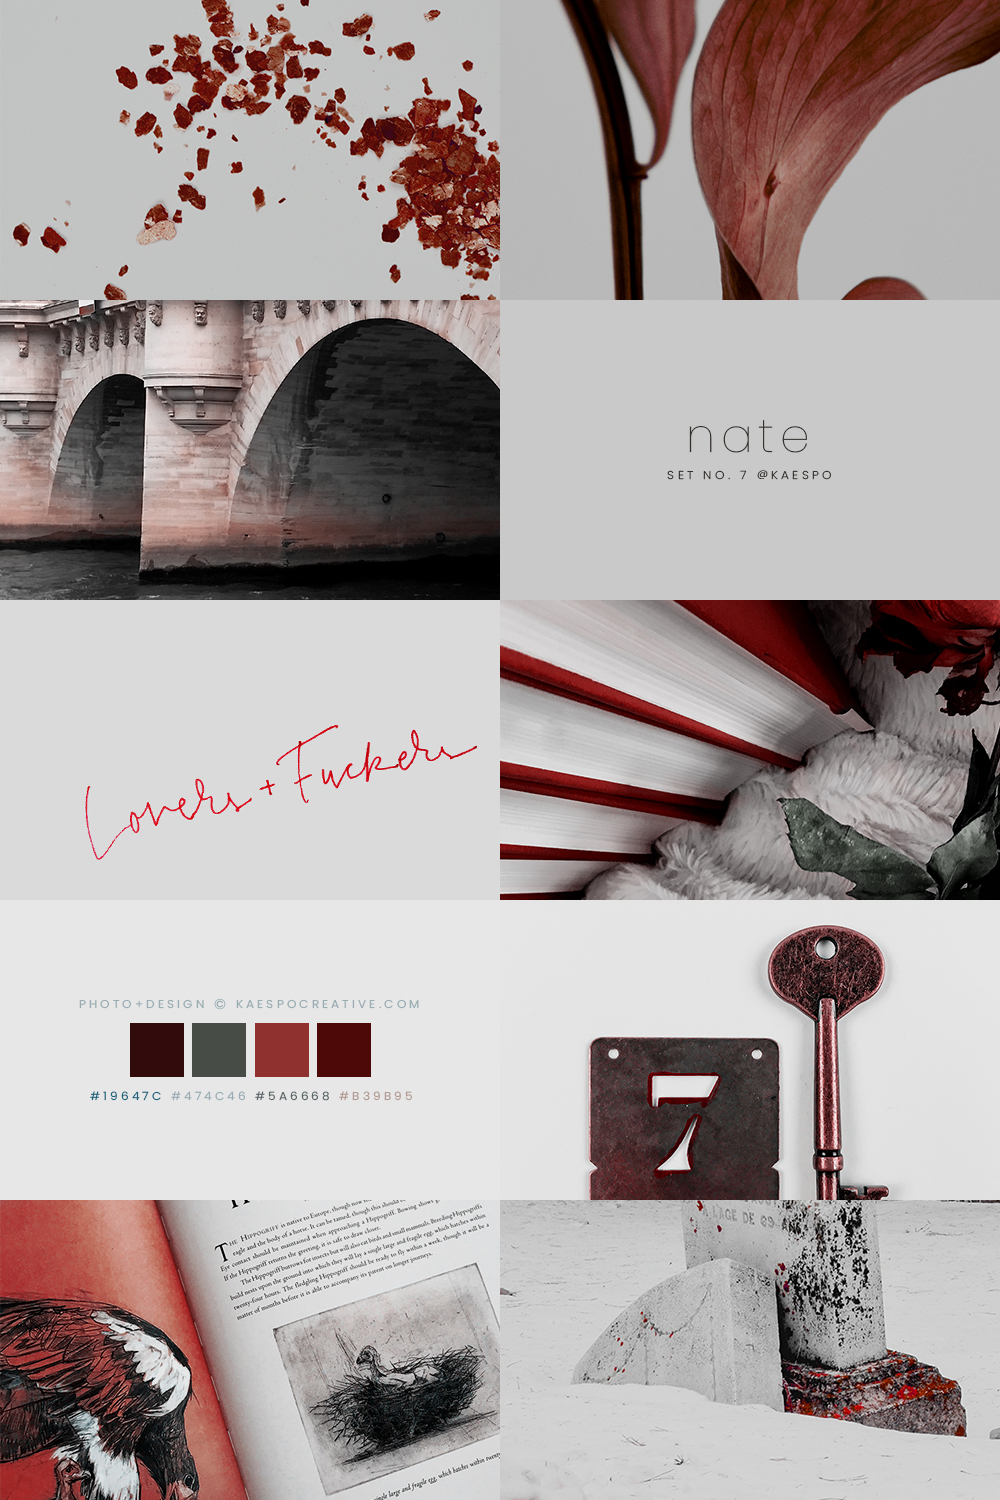 Free Aesthetic Stock Photograph, Social Media & Branding Resources by KAESPO Design & Blog